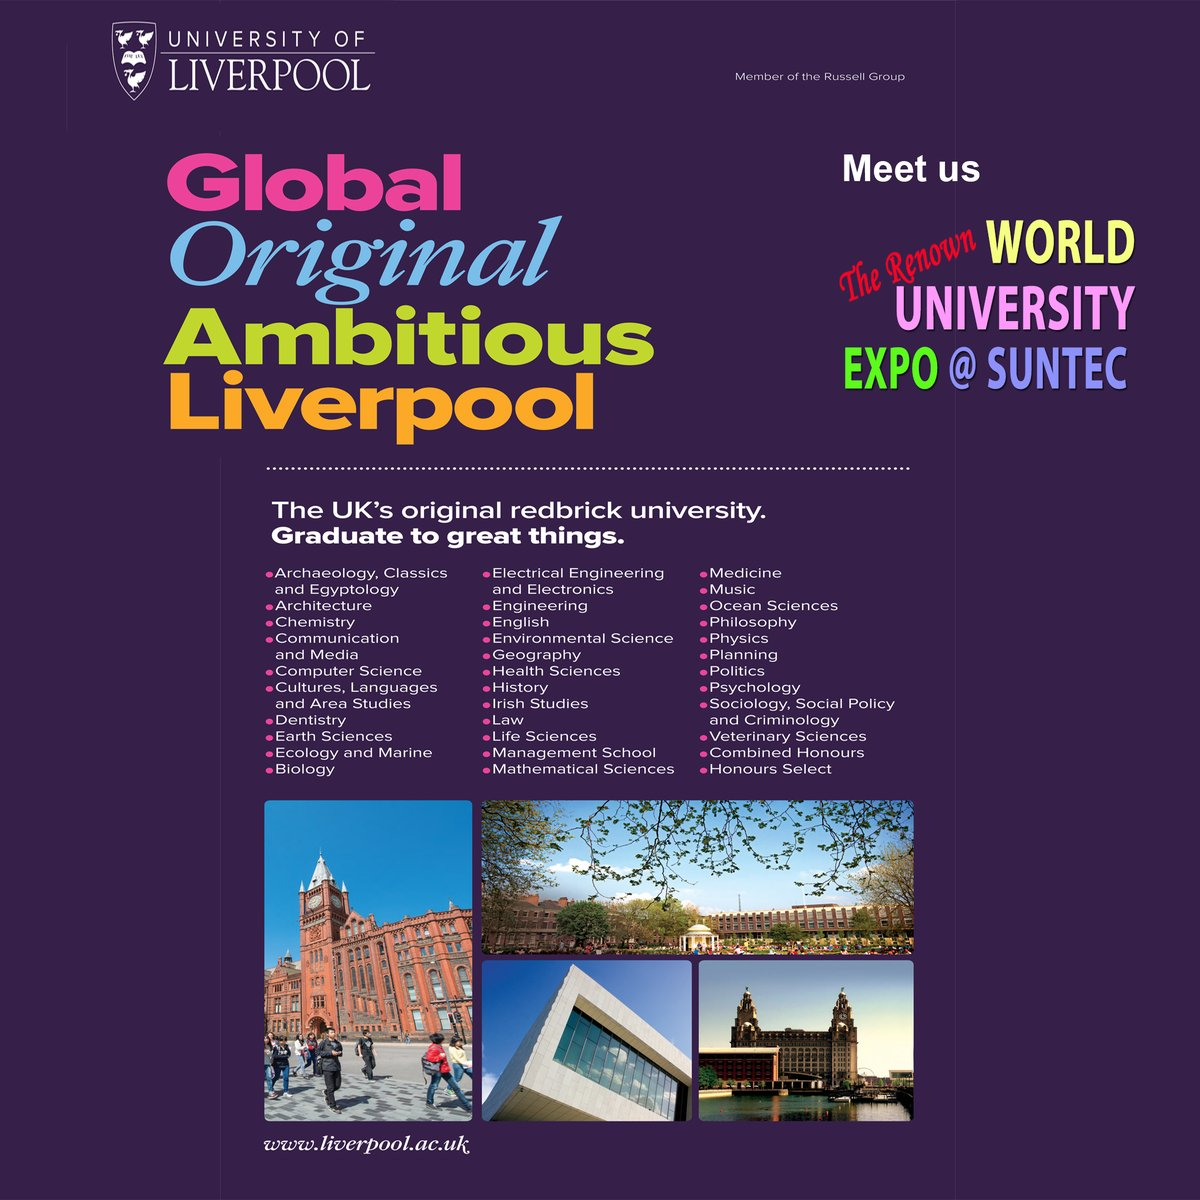 Meet Uni of Liverpool at WorldUniExpo on Fri 17 Jan 3-9pm at Suntec Level 3 Concourse. Degree in Criminology, Architecture, HealthScience, Aviation, Occ Therapy, etc. Visit http://Liverpool.OverseasEducation.sg or Call 61009800 for more info. Rmb to bring your results for free applications!!pic.twitter.com/A8hyL56ehZ